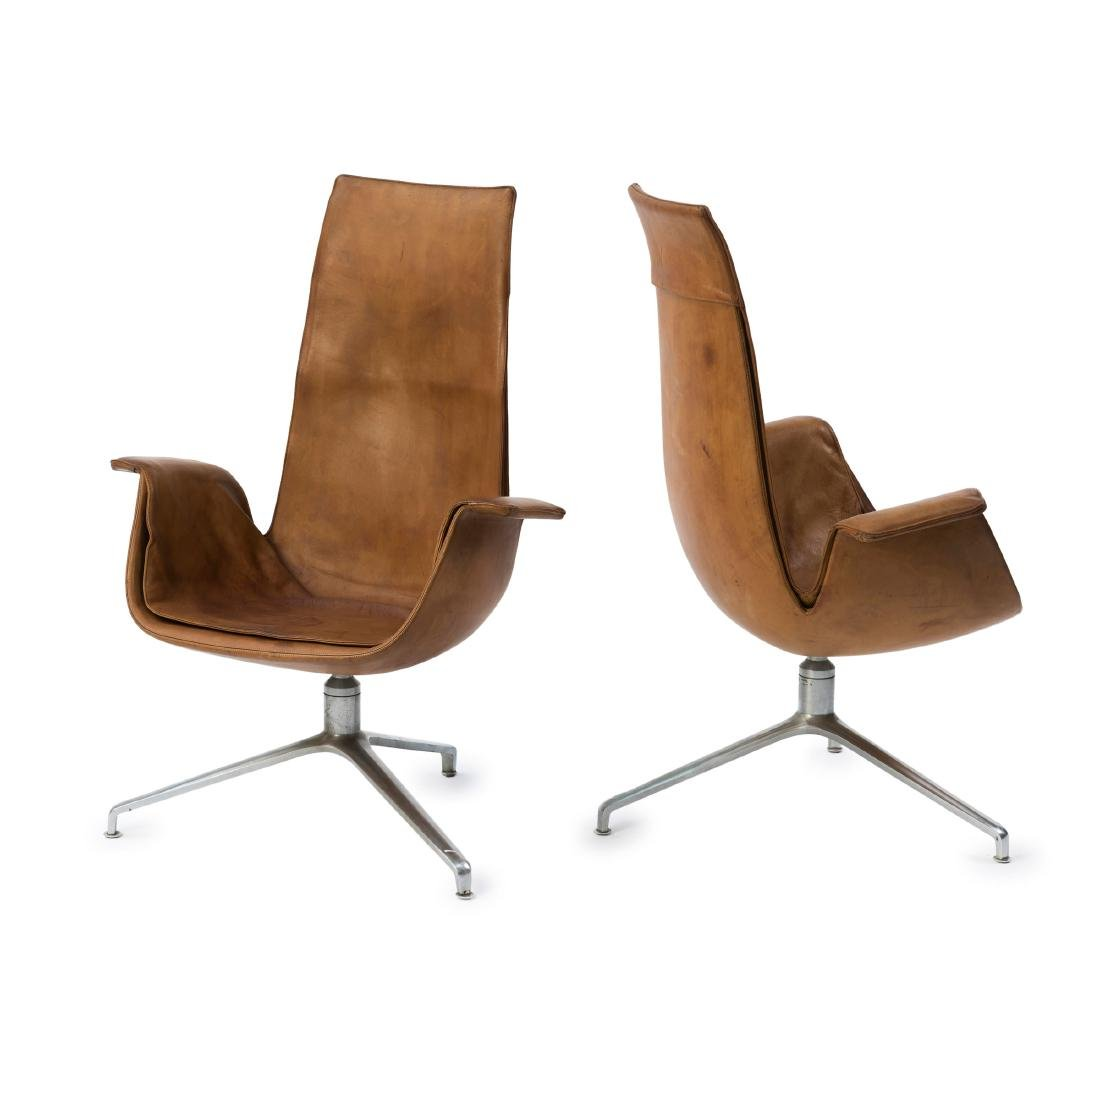 Two highback 'FK 6725' desk chairs, 1964